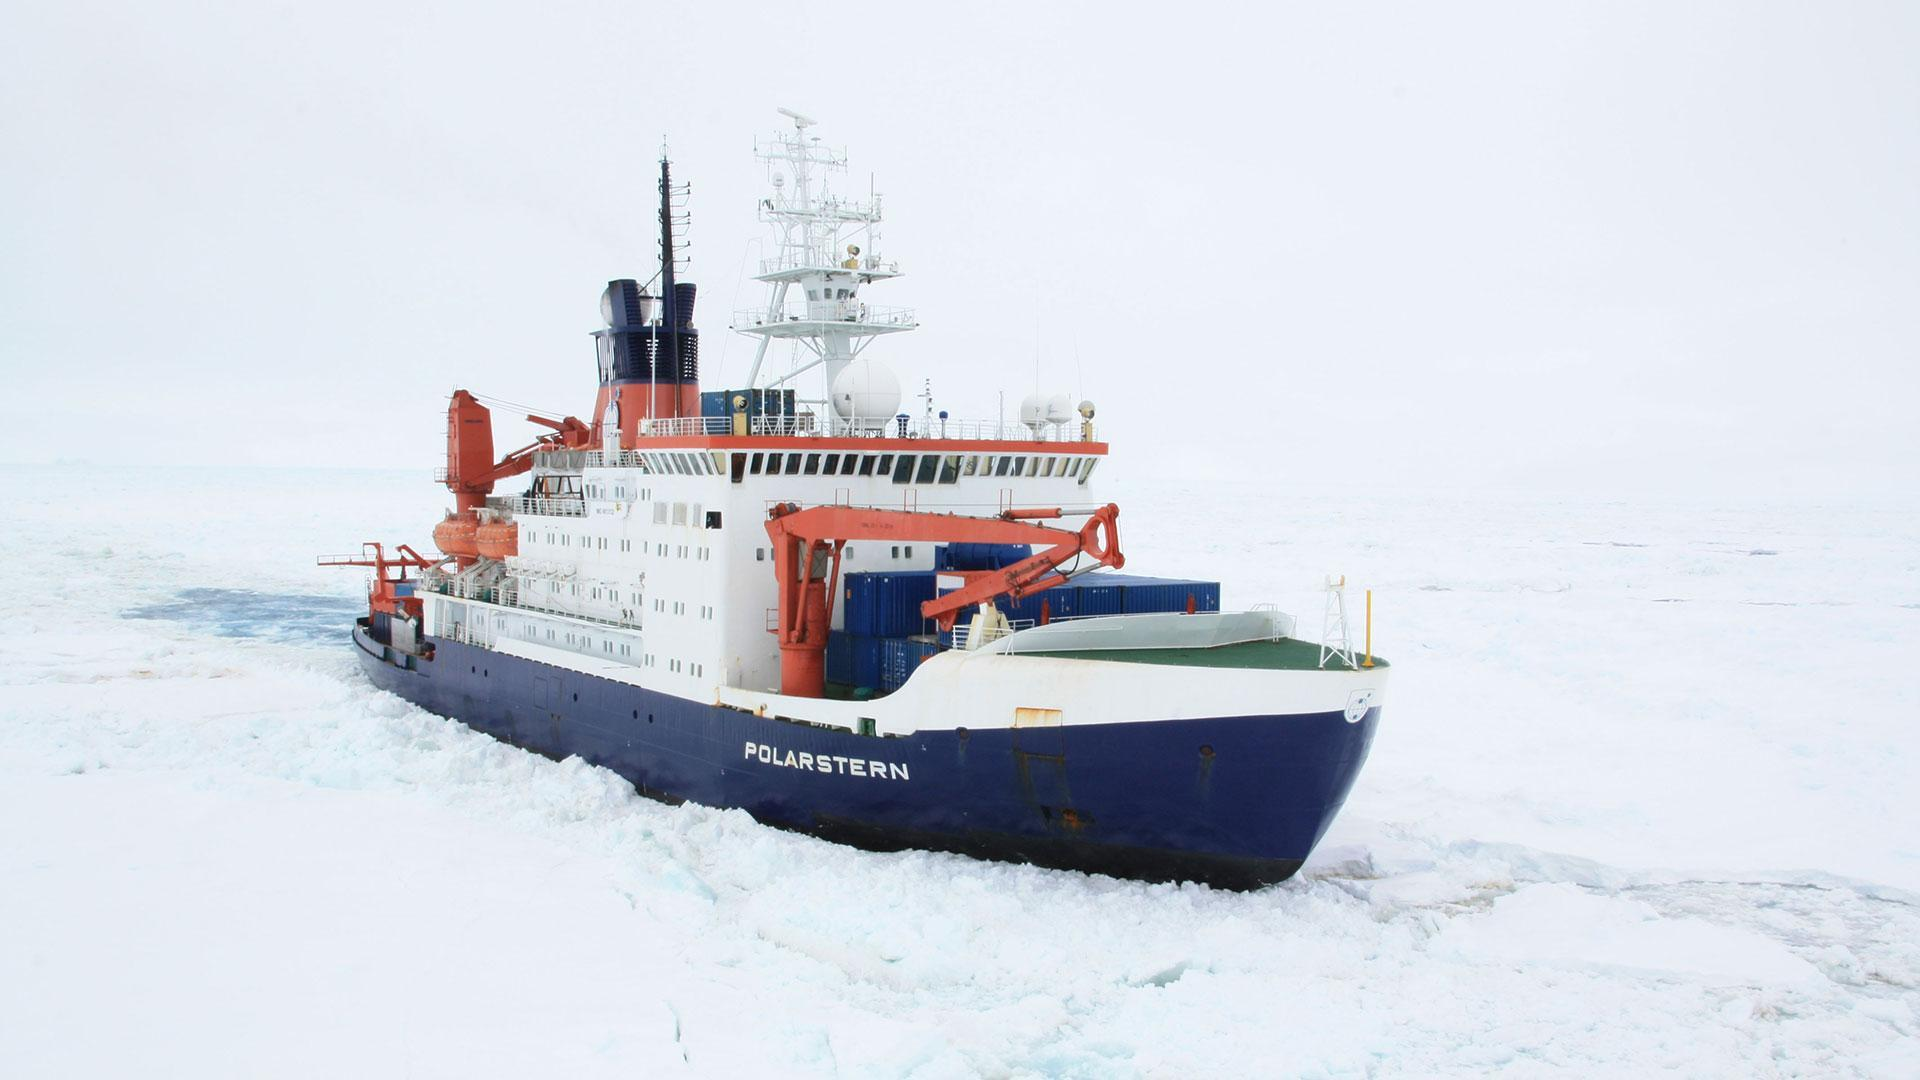 The Polarstern research icebreaker moving through the ice